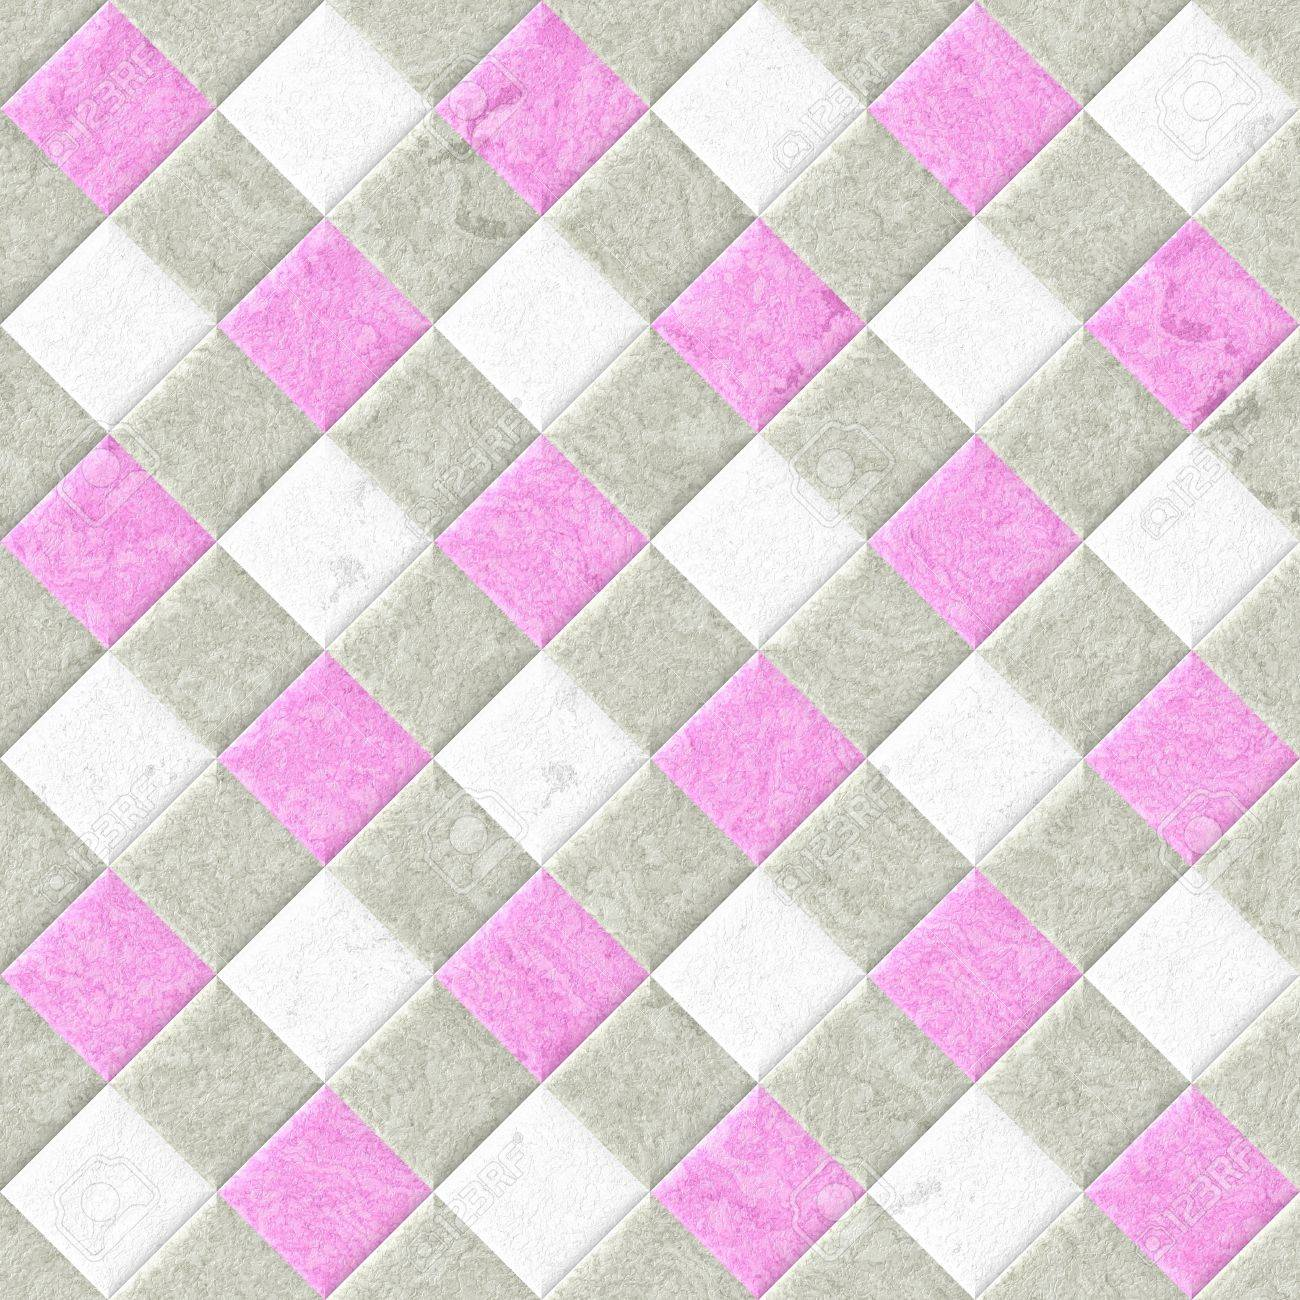 Grey white paving with light pink floor tiles stock photo picture grey white paving with light pink floor tiles stock photo 46997694 dailygadgetfo Gallery